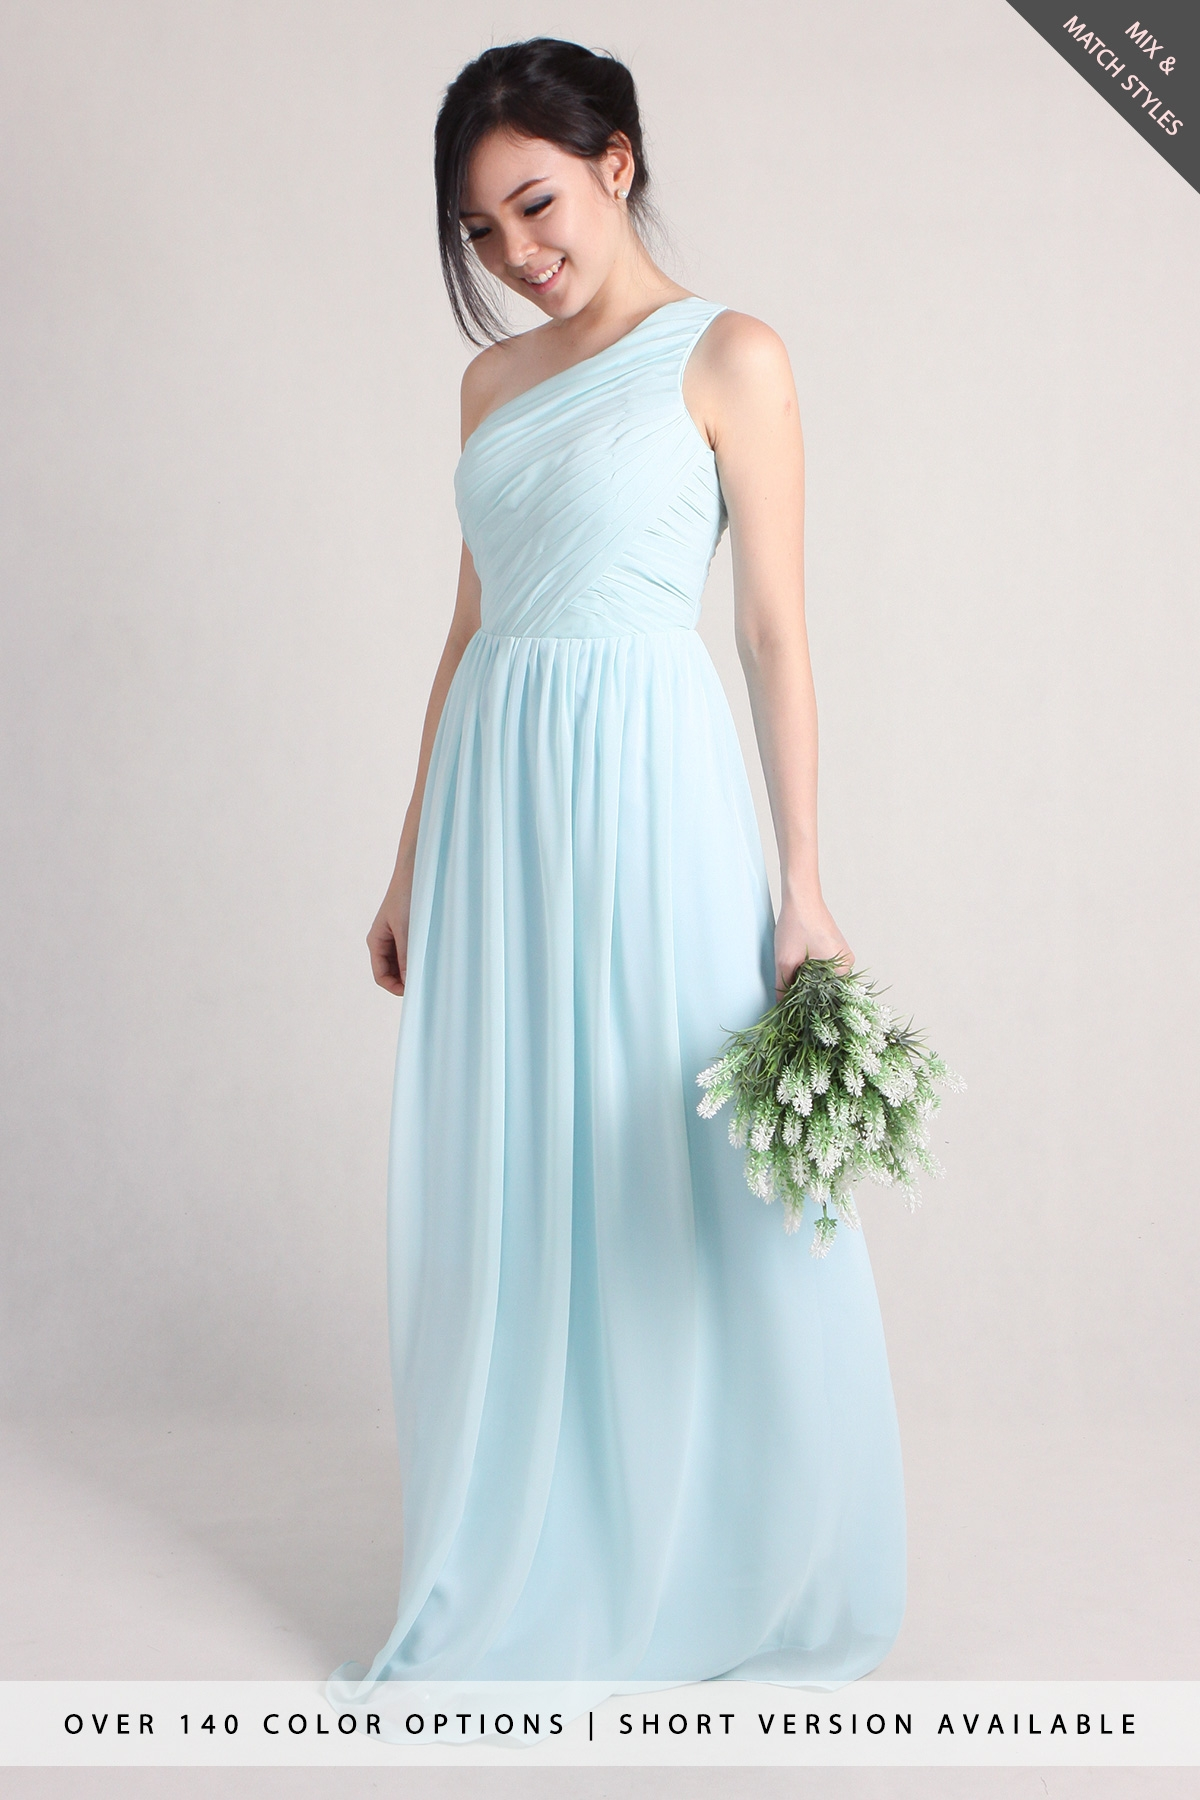 Blair Toga Chiffon Dress - PS Curate